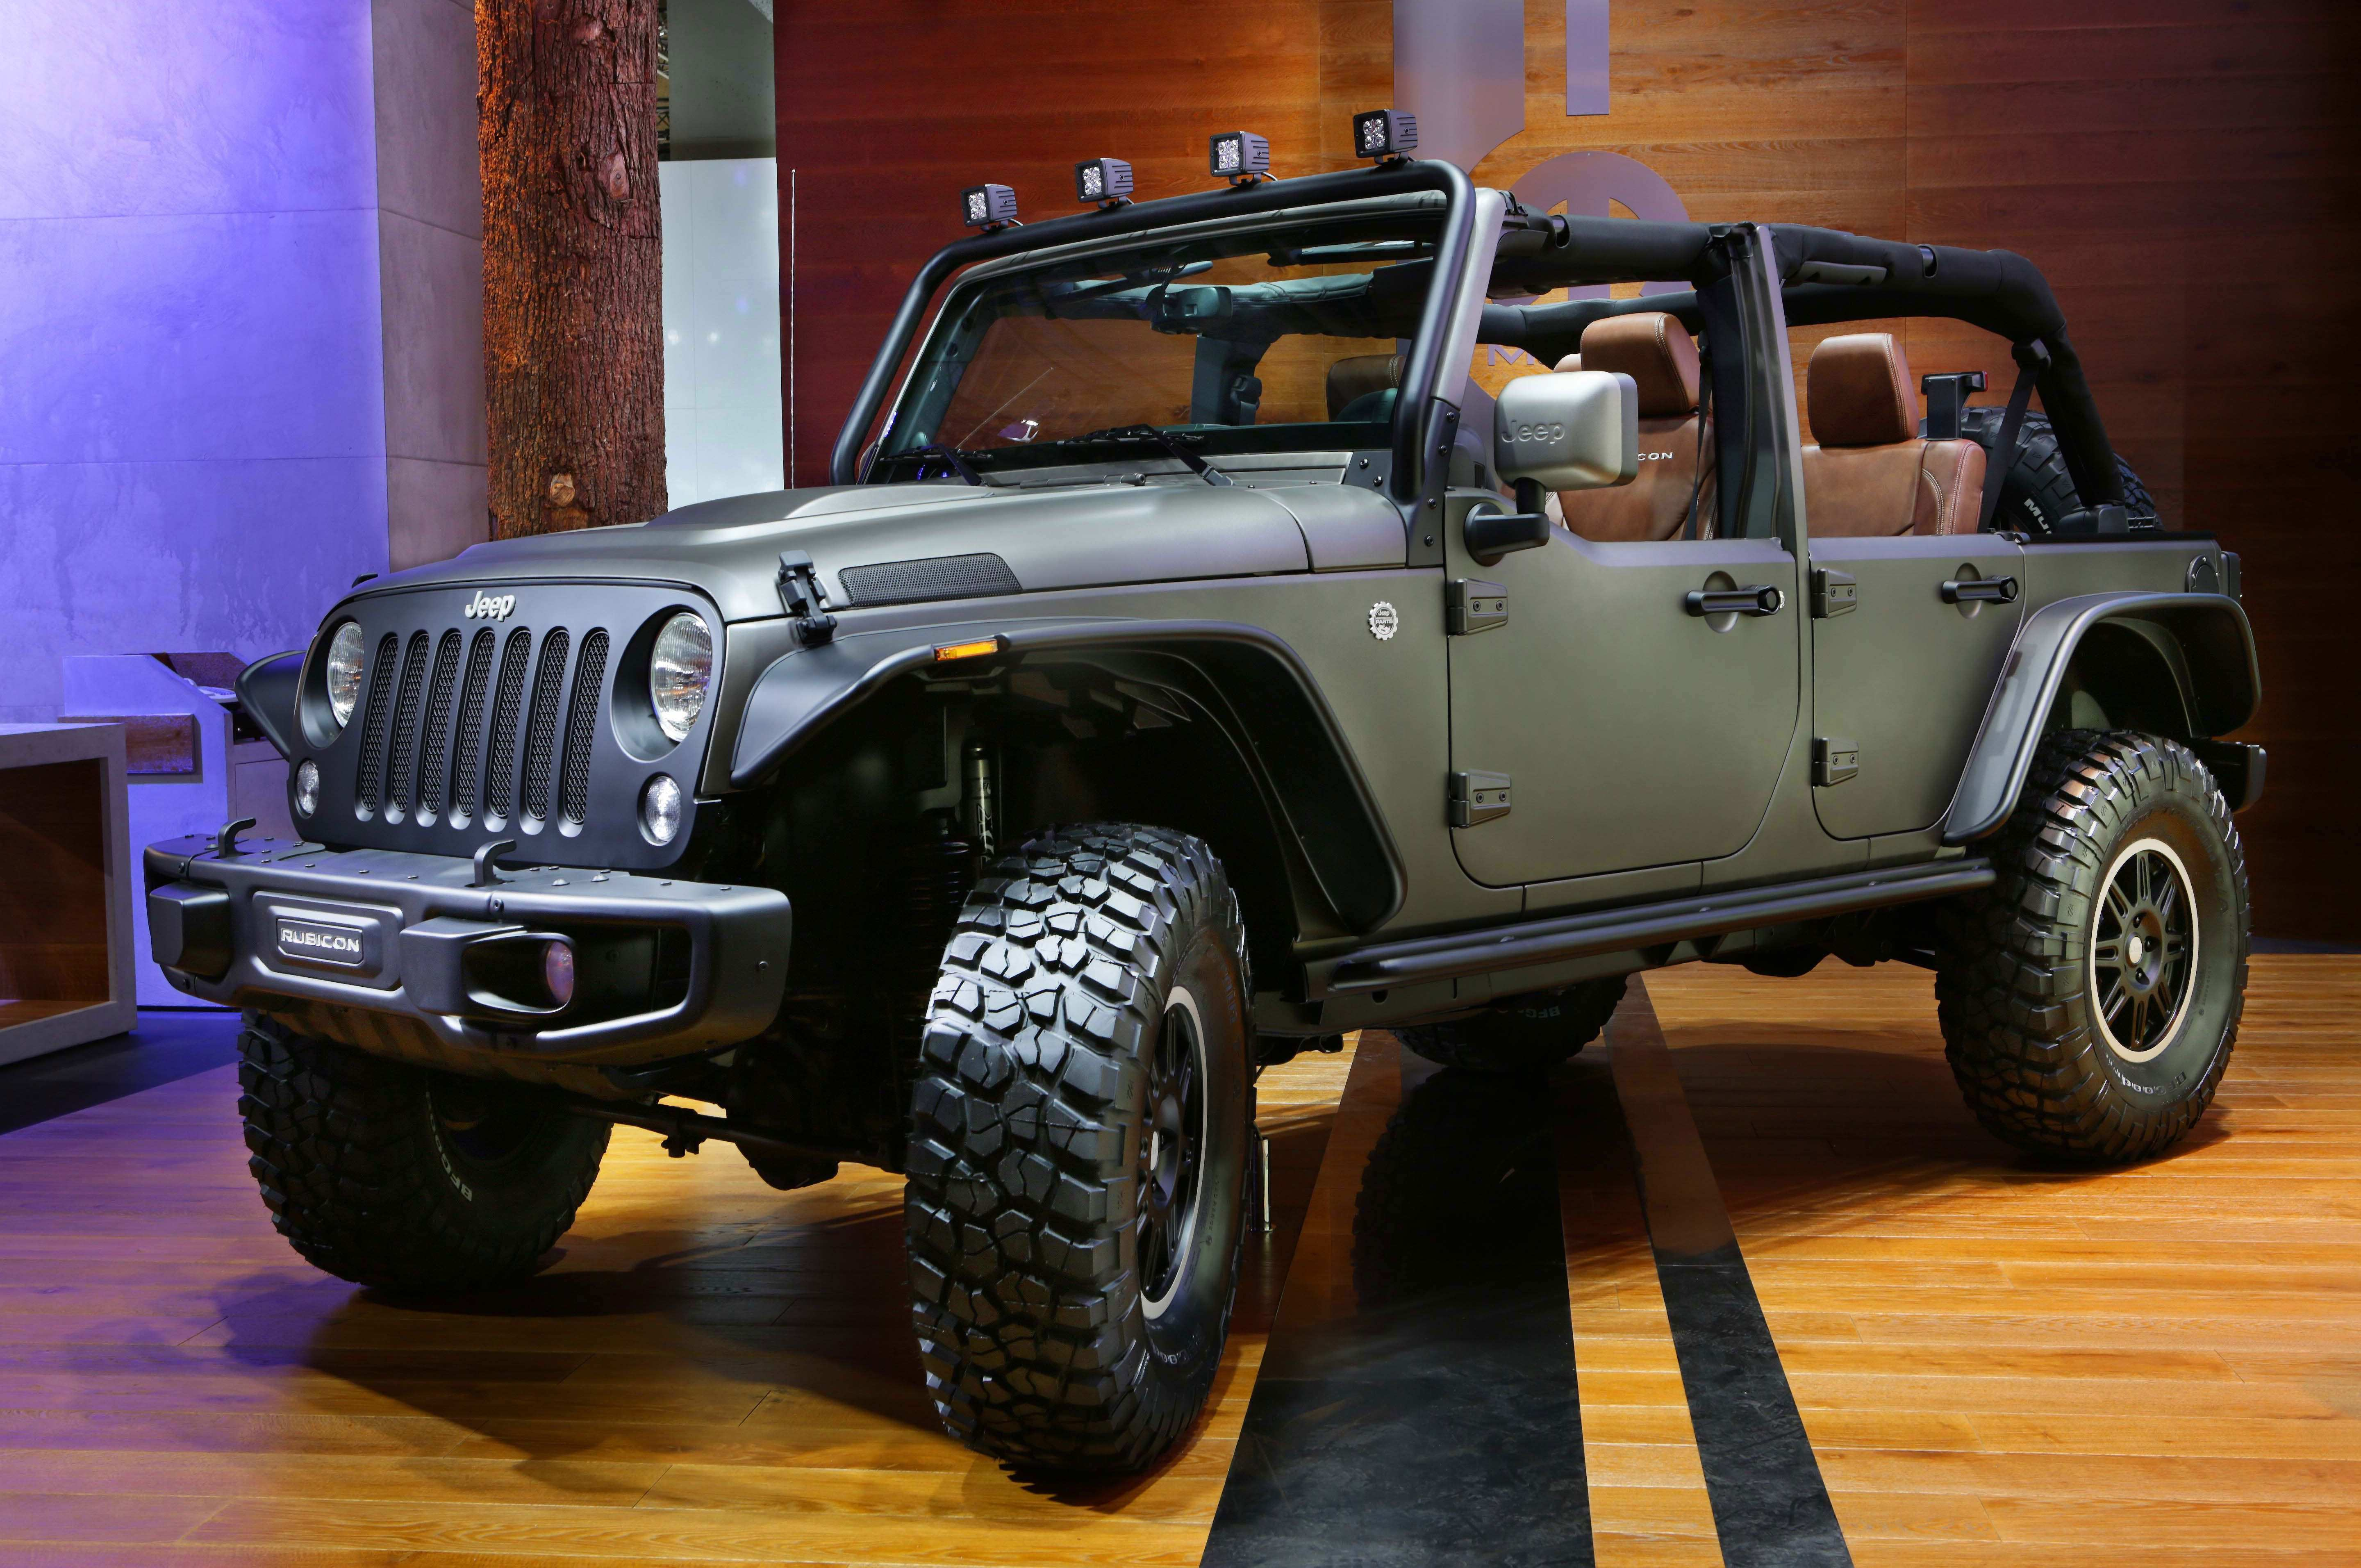 95 Concept of New Jeep 2019 Wrangler Colors Picture Release Date And Review Interior by New Jeep 2019 Wrangler Colors Picture Release Date And Review